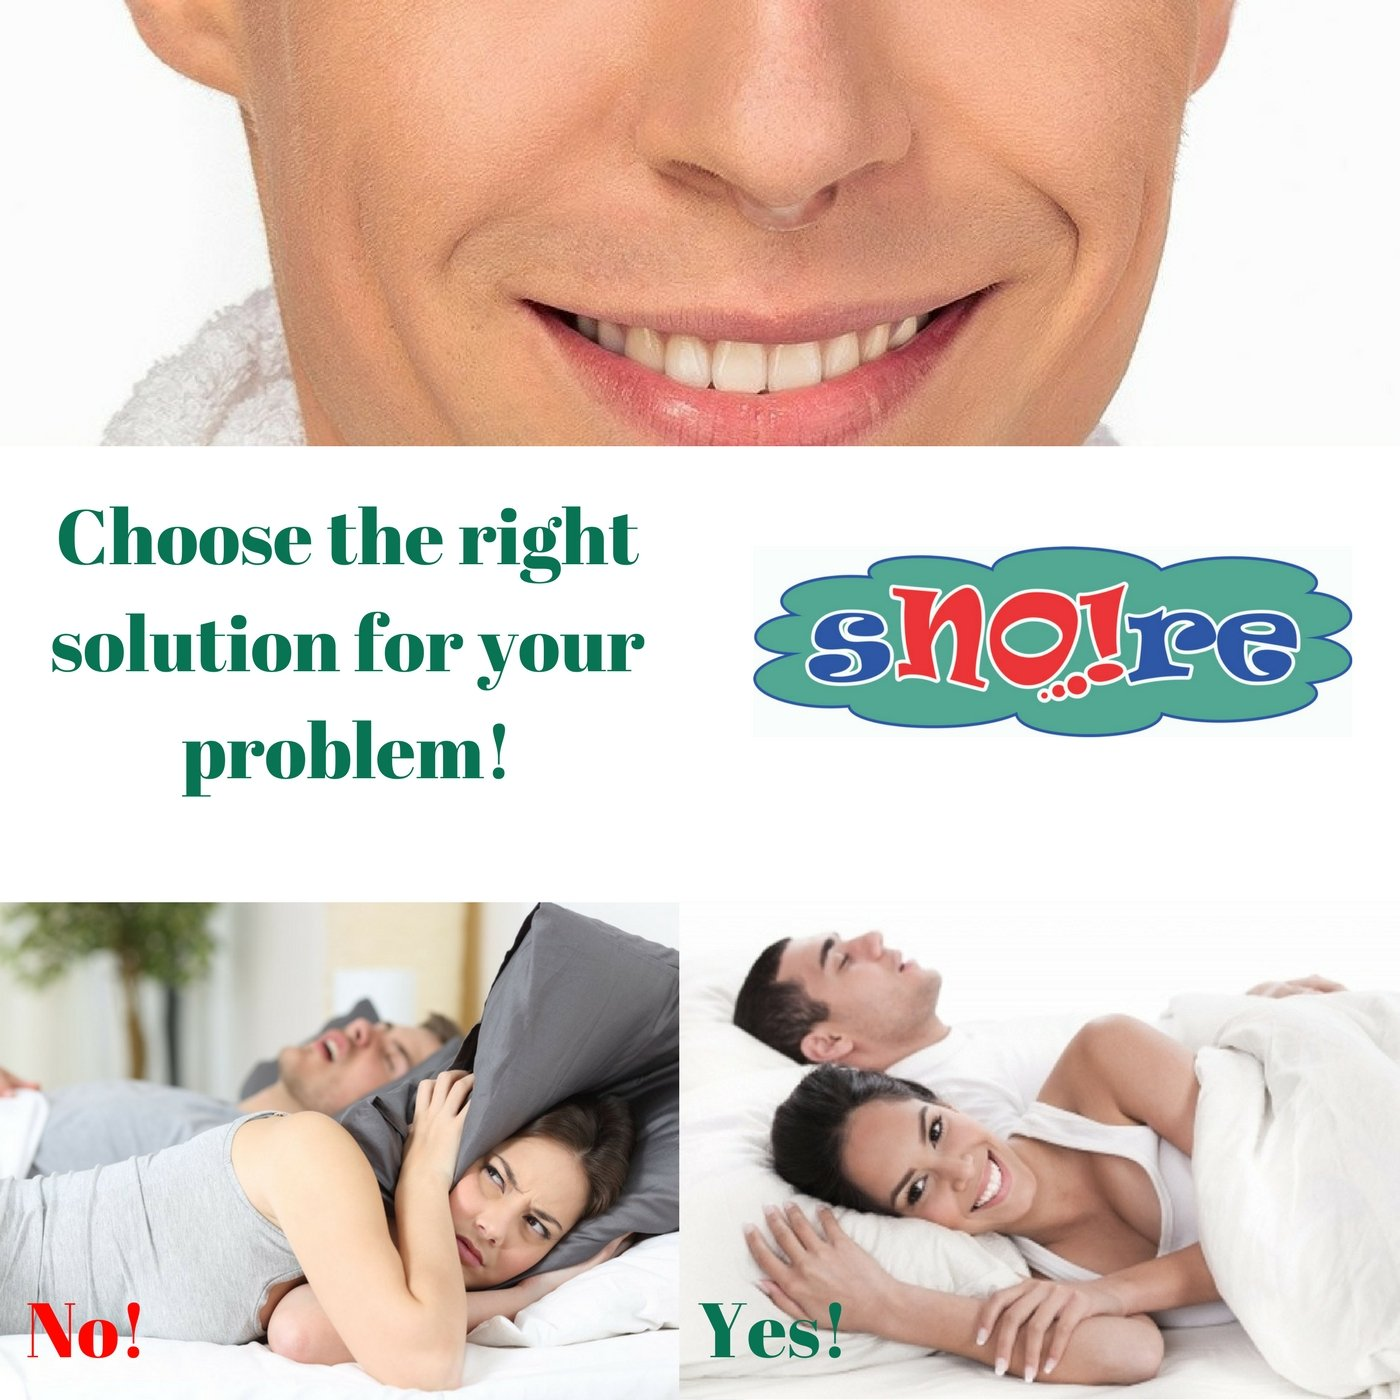 SNO!re: The Original 2 in 1 Premium Anti Snoring Devices; Set of 4 Nose Vents Cones and 1 Travel case; Sleep Aid Solution for Ease Breathing, Maximizes Airflow, Prevents Snoring and Snore Stop